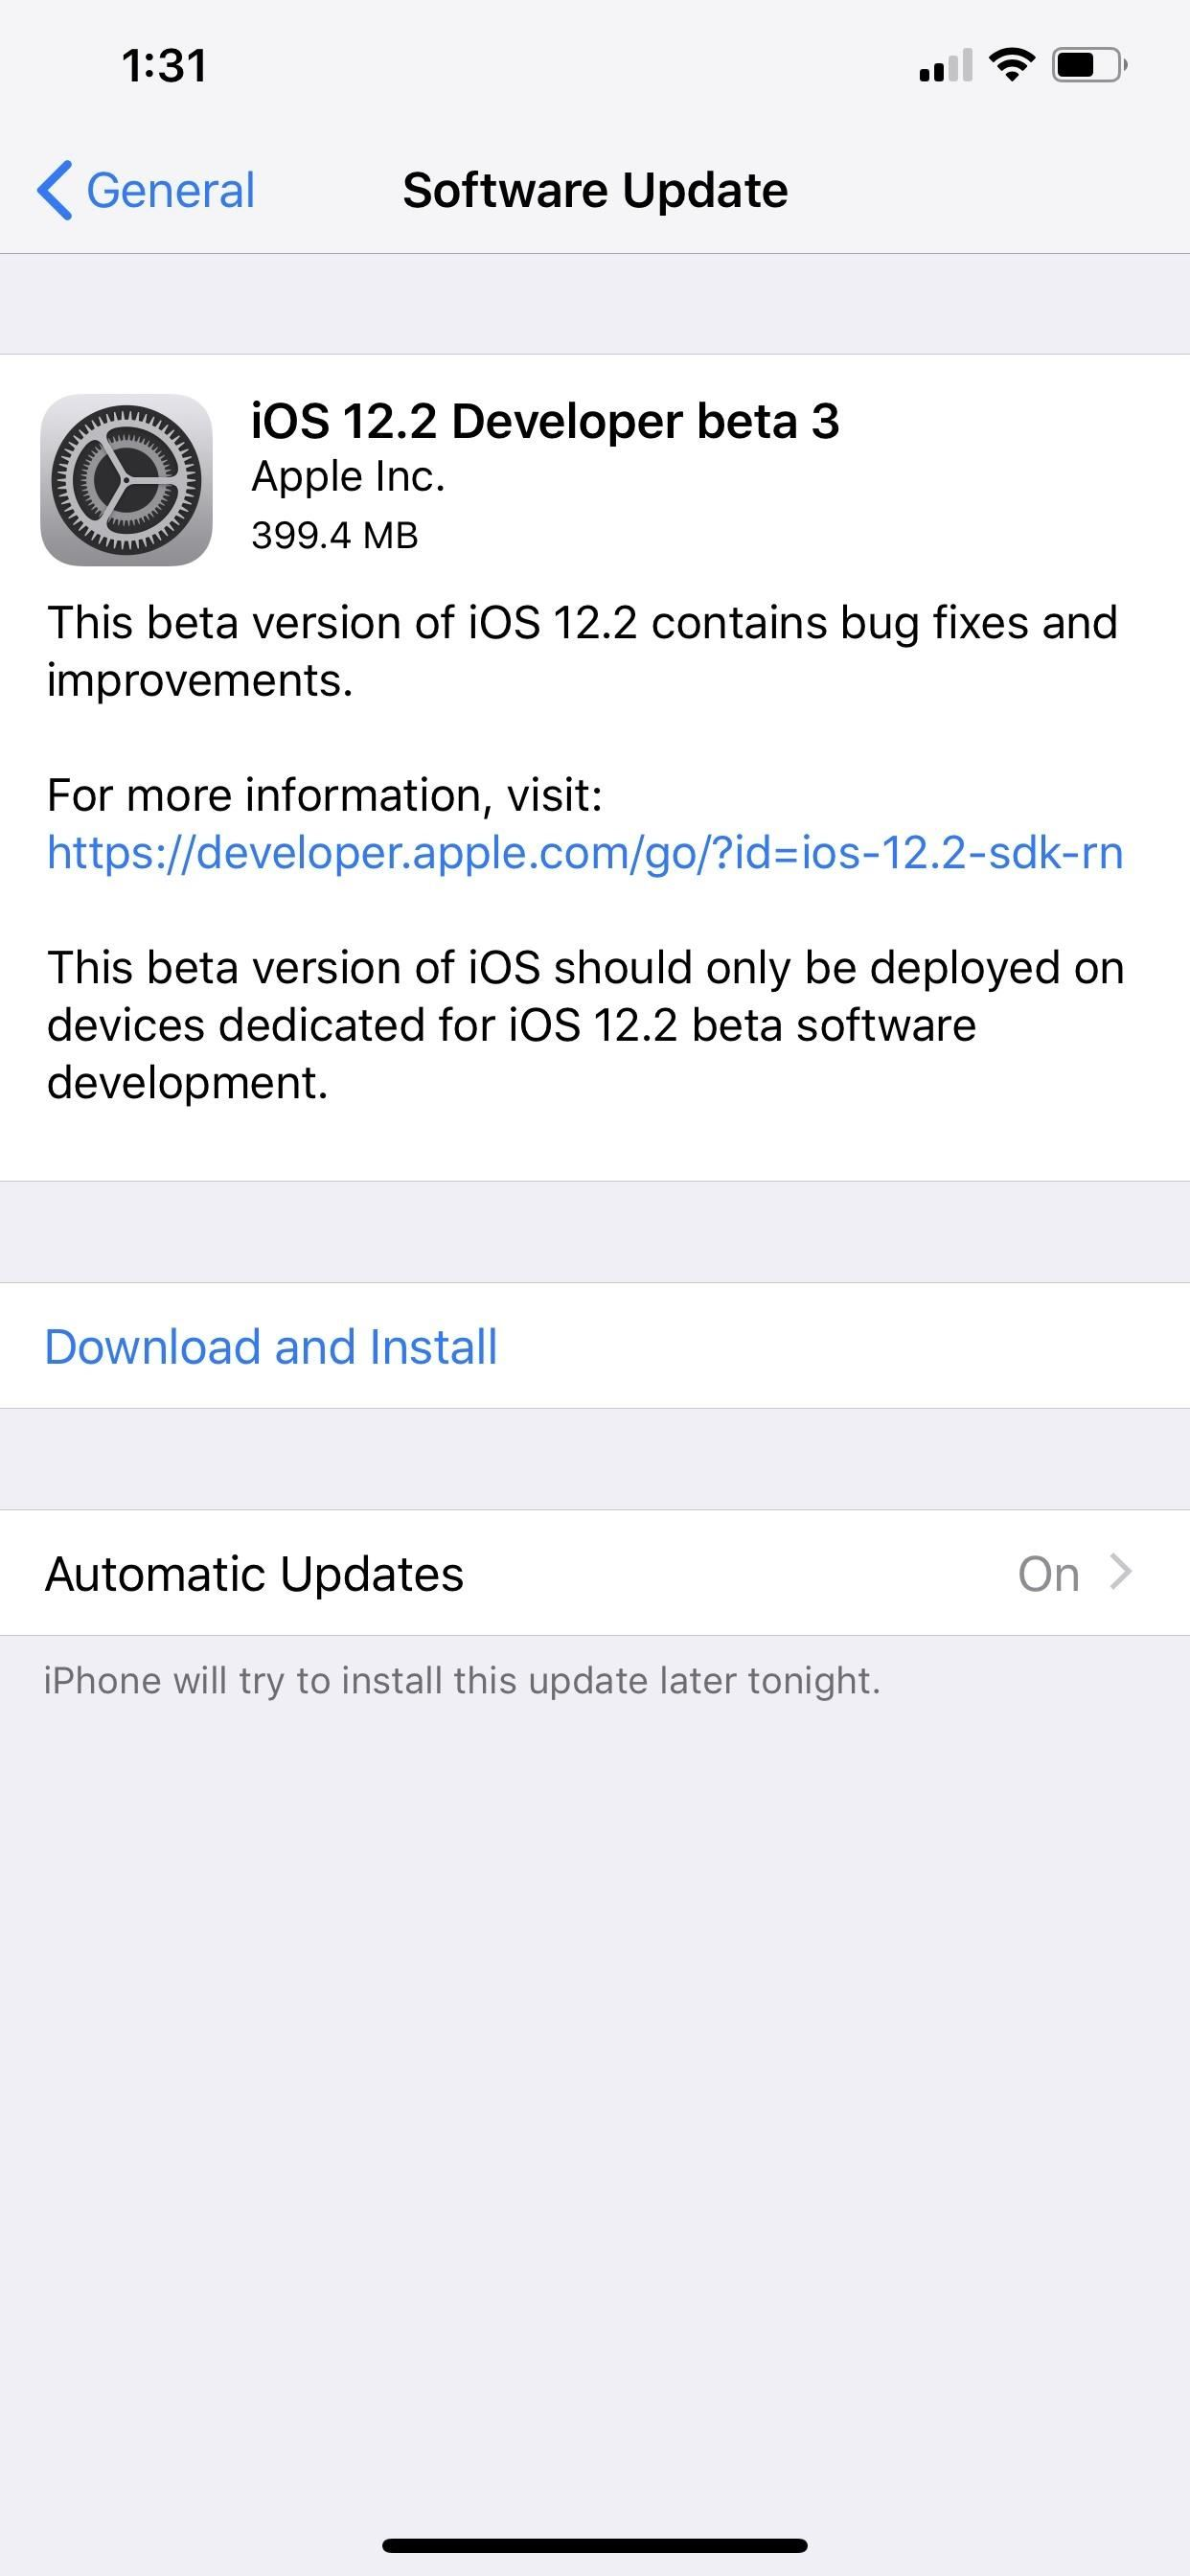 Apple Just Released iOS 12.2 Developer Beta 3 for iPhone, Fixes Lock Screen Issue & Restores Group FaceTime